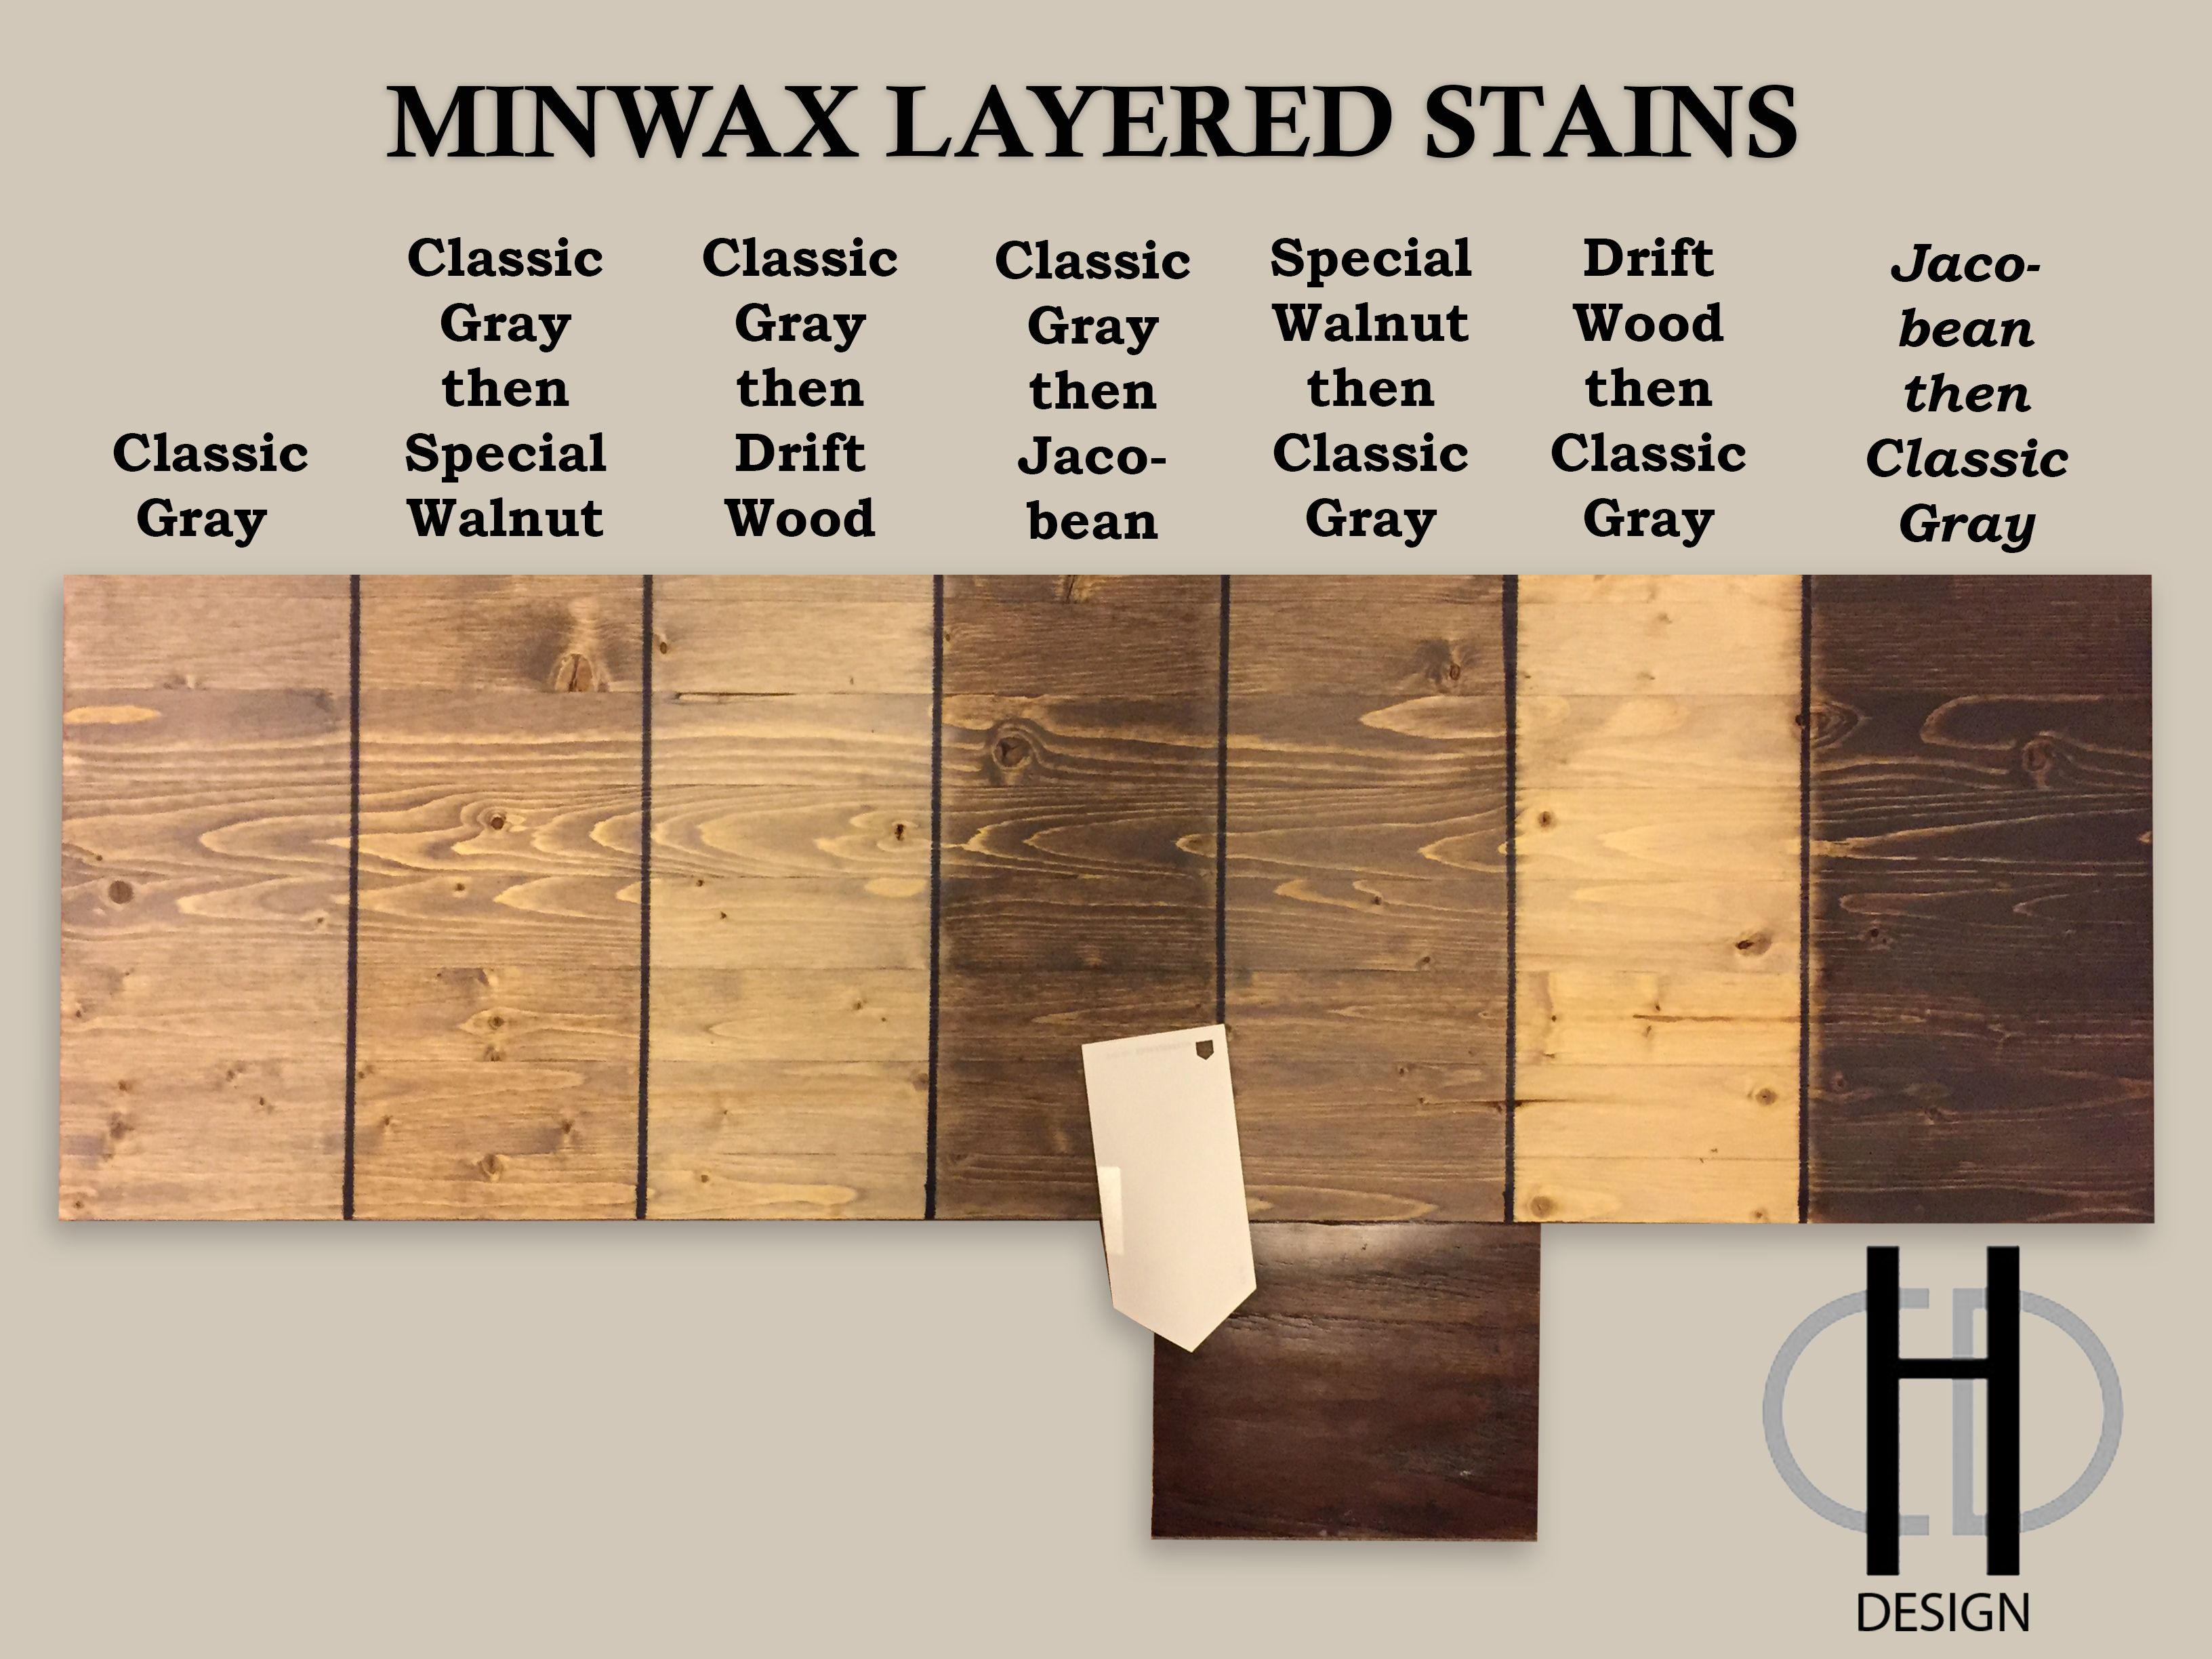 Minwax Stain Color Study Classic Grey Special Walnut Driftwood